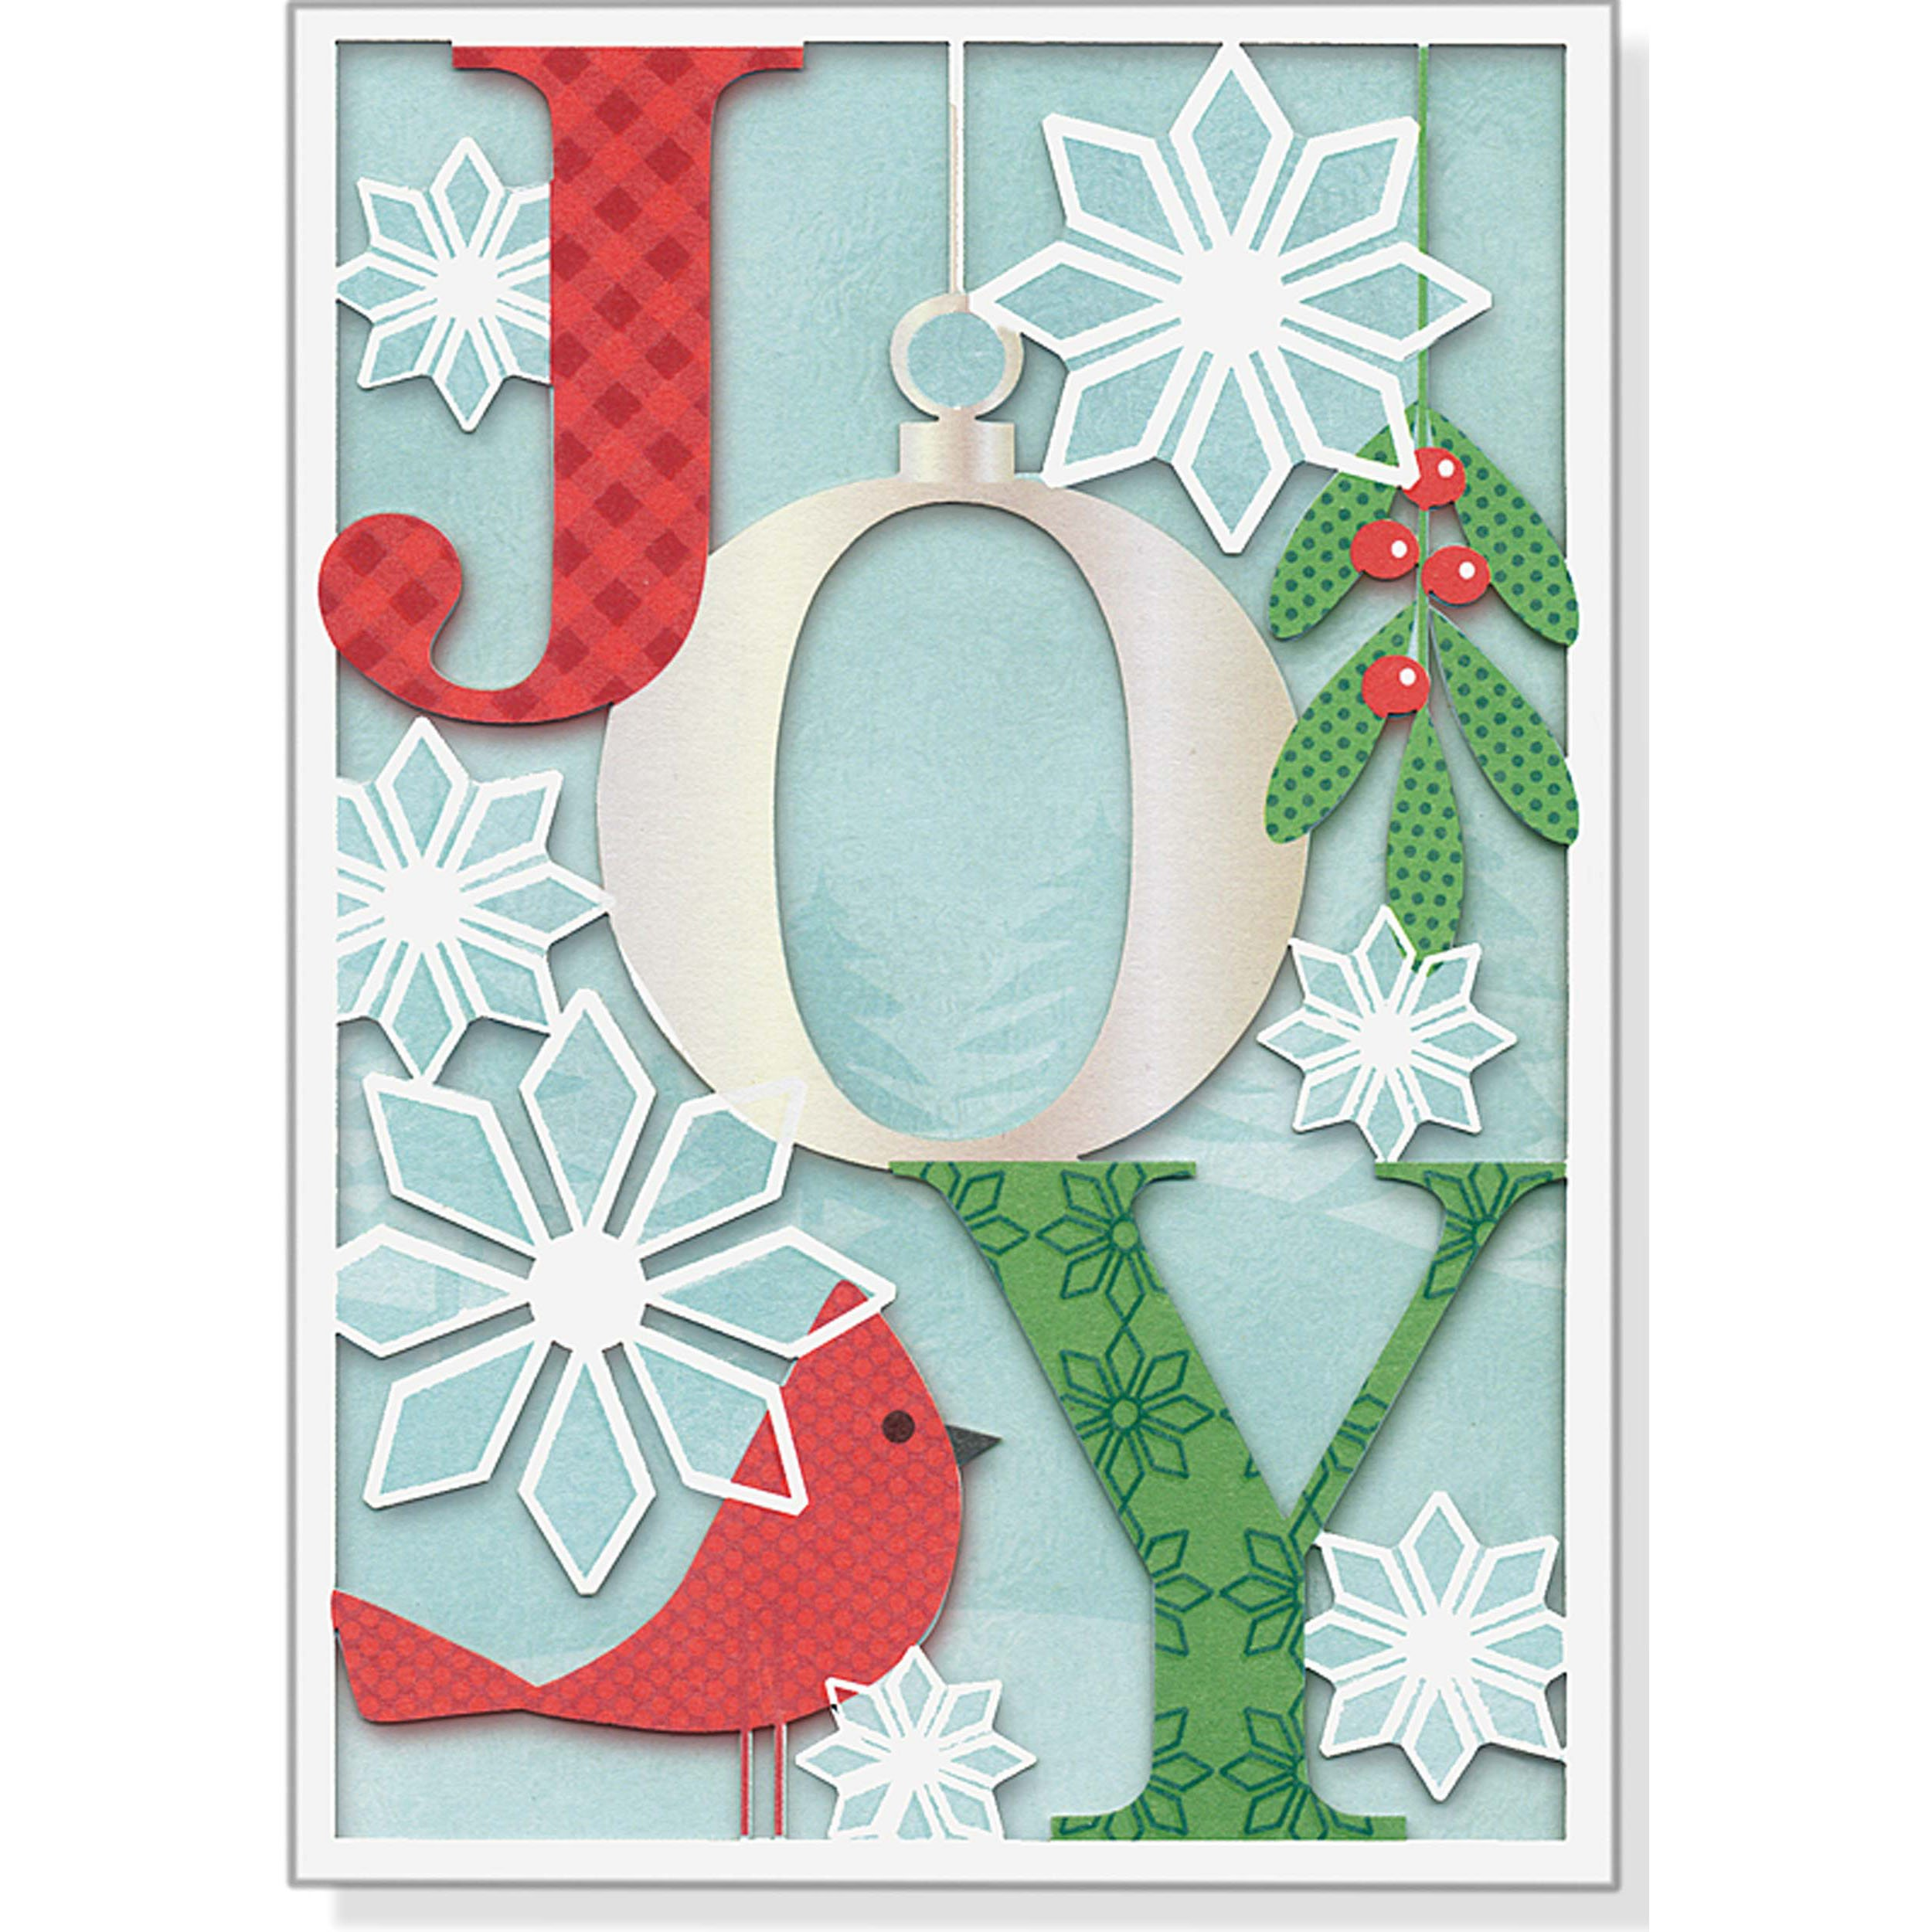 Joy Holiday Boxed Cards (Laser Cut) (Christmas Cards, Holiday Cards ...